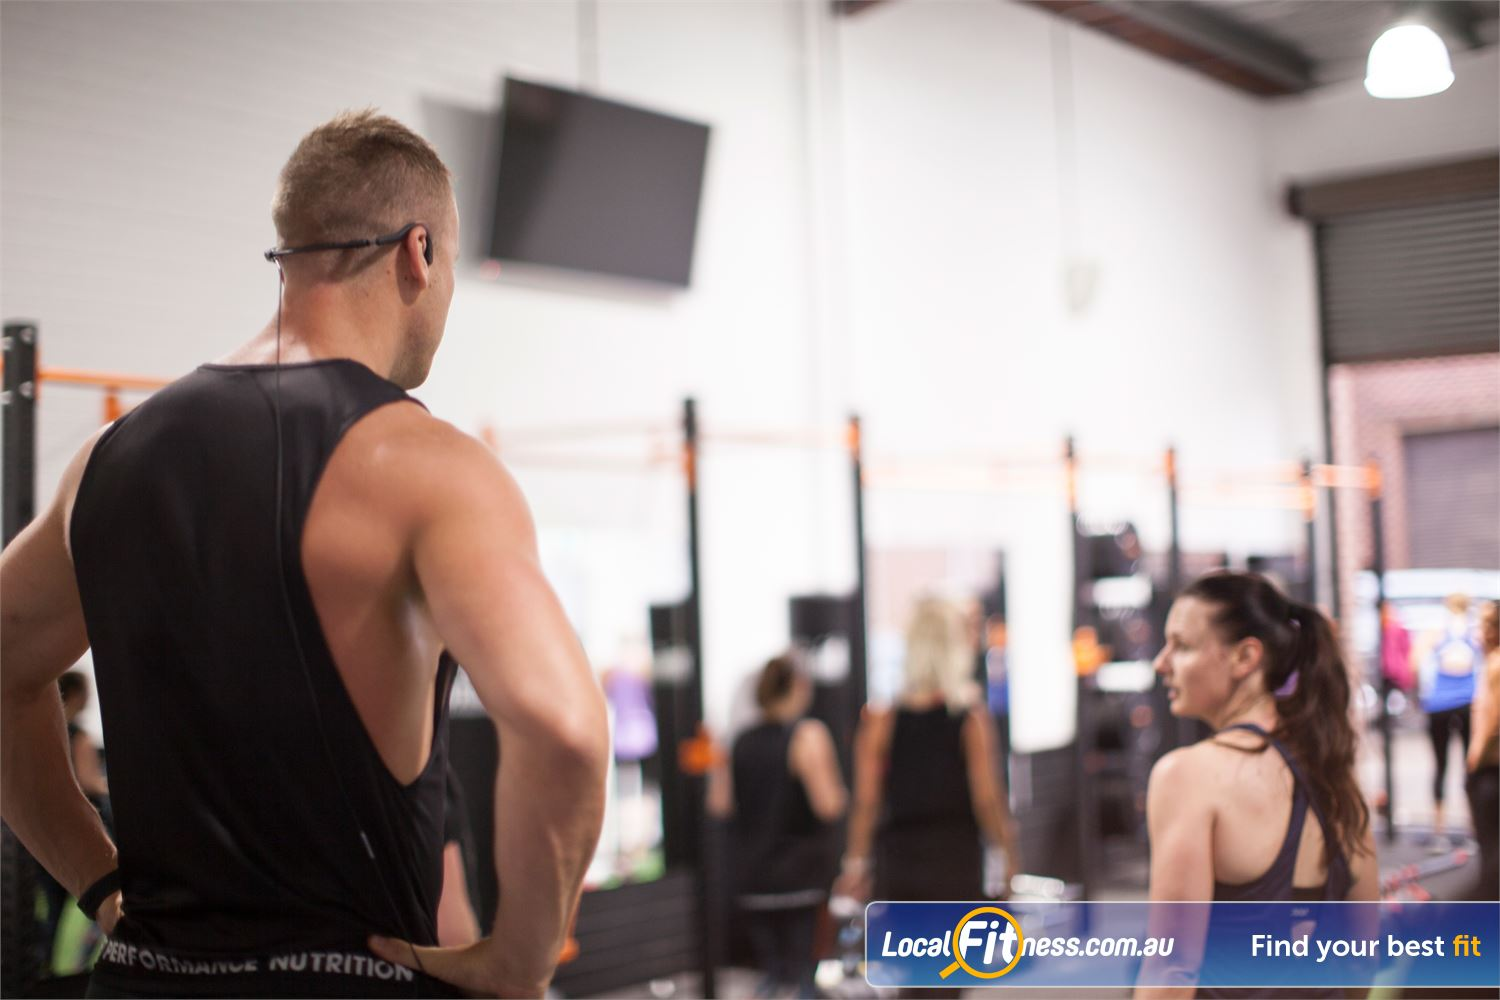 The Body Factory Near Warumbul Our coaches are there to provide a holistic approach to fitness.